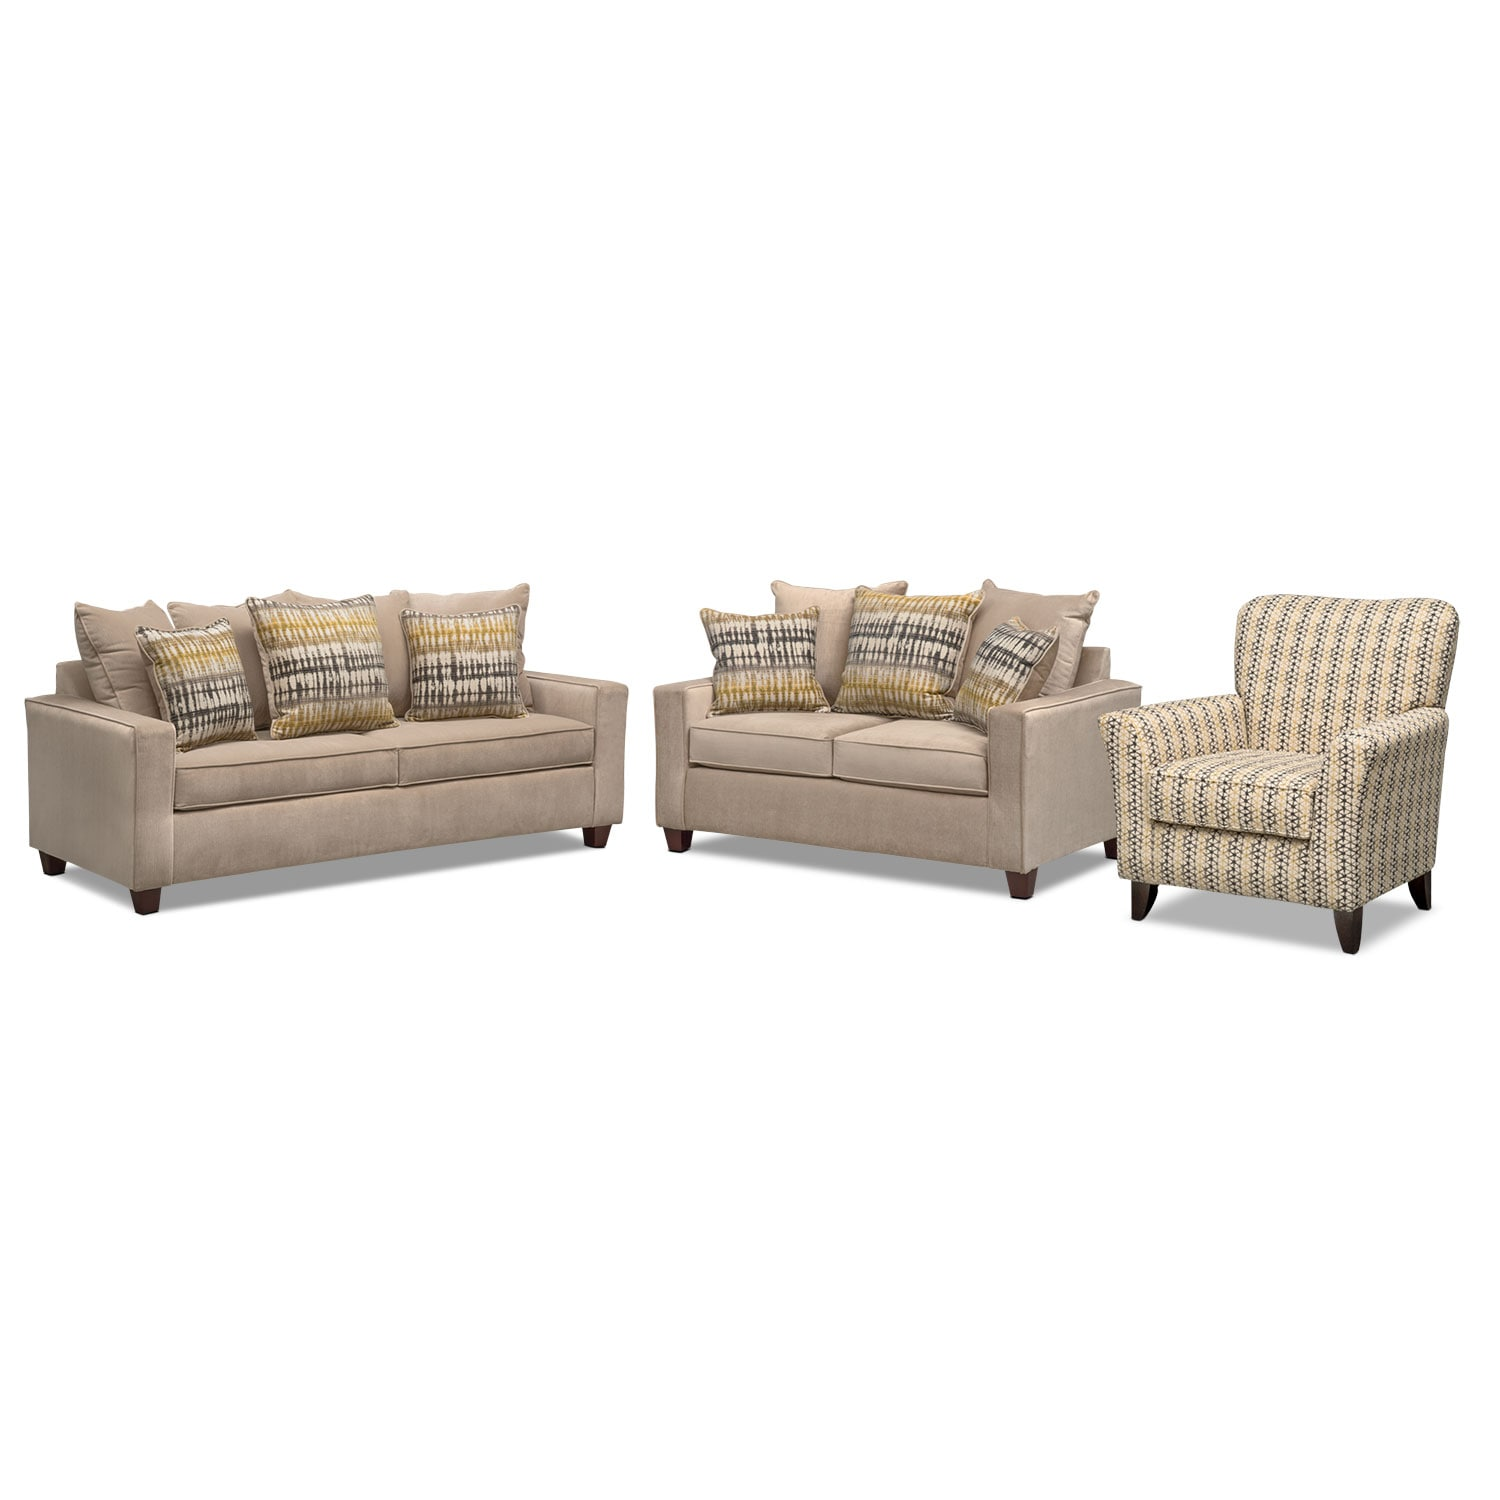 Bryden Queen Memory Foam Sleeper Sofa, Loveseat and Accent Chair Set - Beige